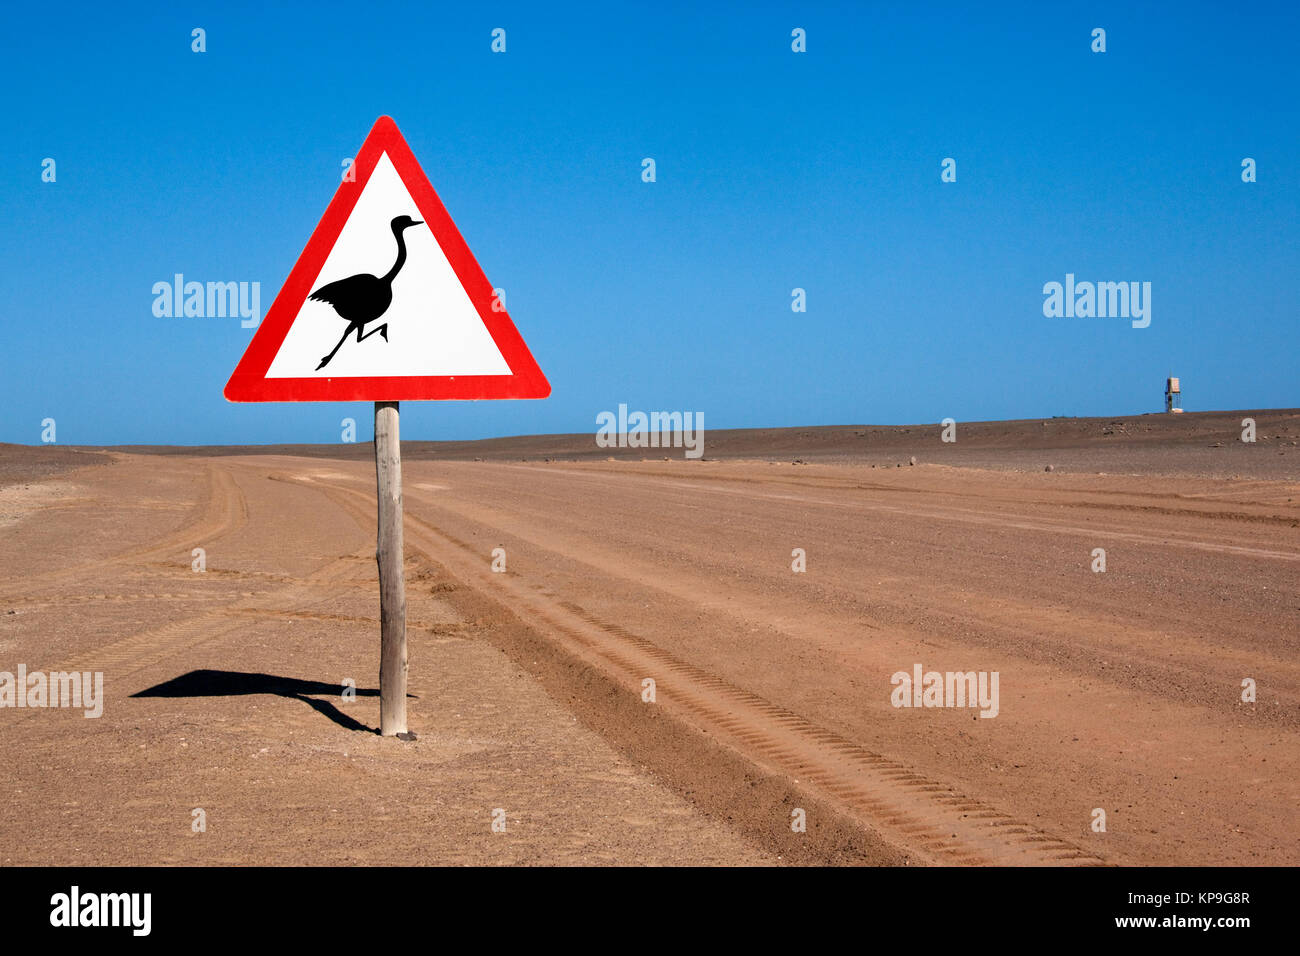 Road sign on a desert road in the Skeleton Coast National Park in the Namib Desert in Namibia - Stock Image